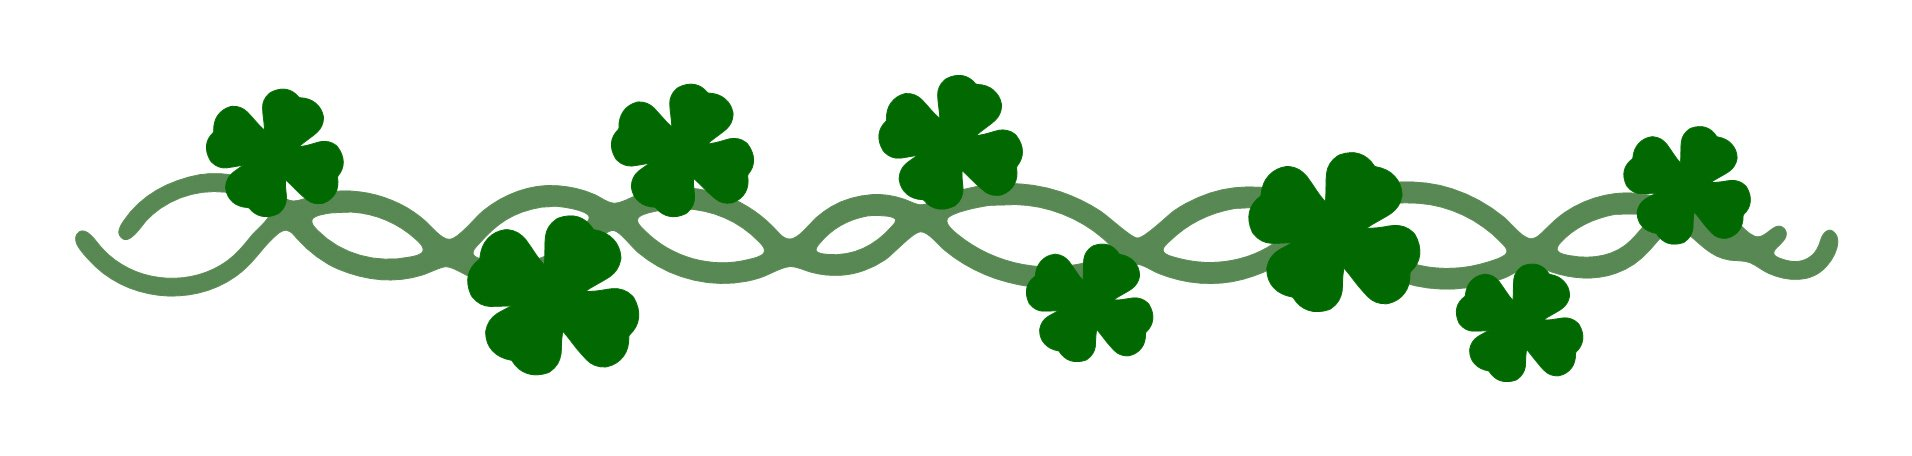 St patricks day divider clipart graphic black and white St Patricks Day Clipart at GetDrawings.com | Free for ... graphic black and white